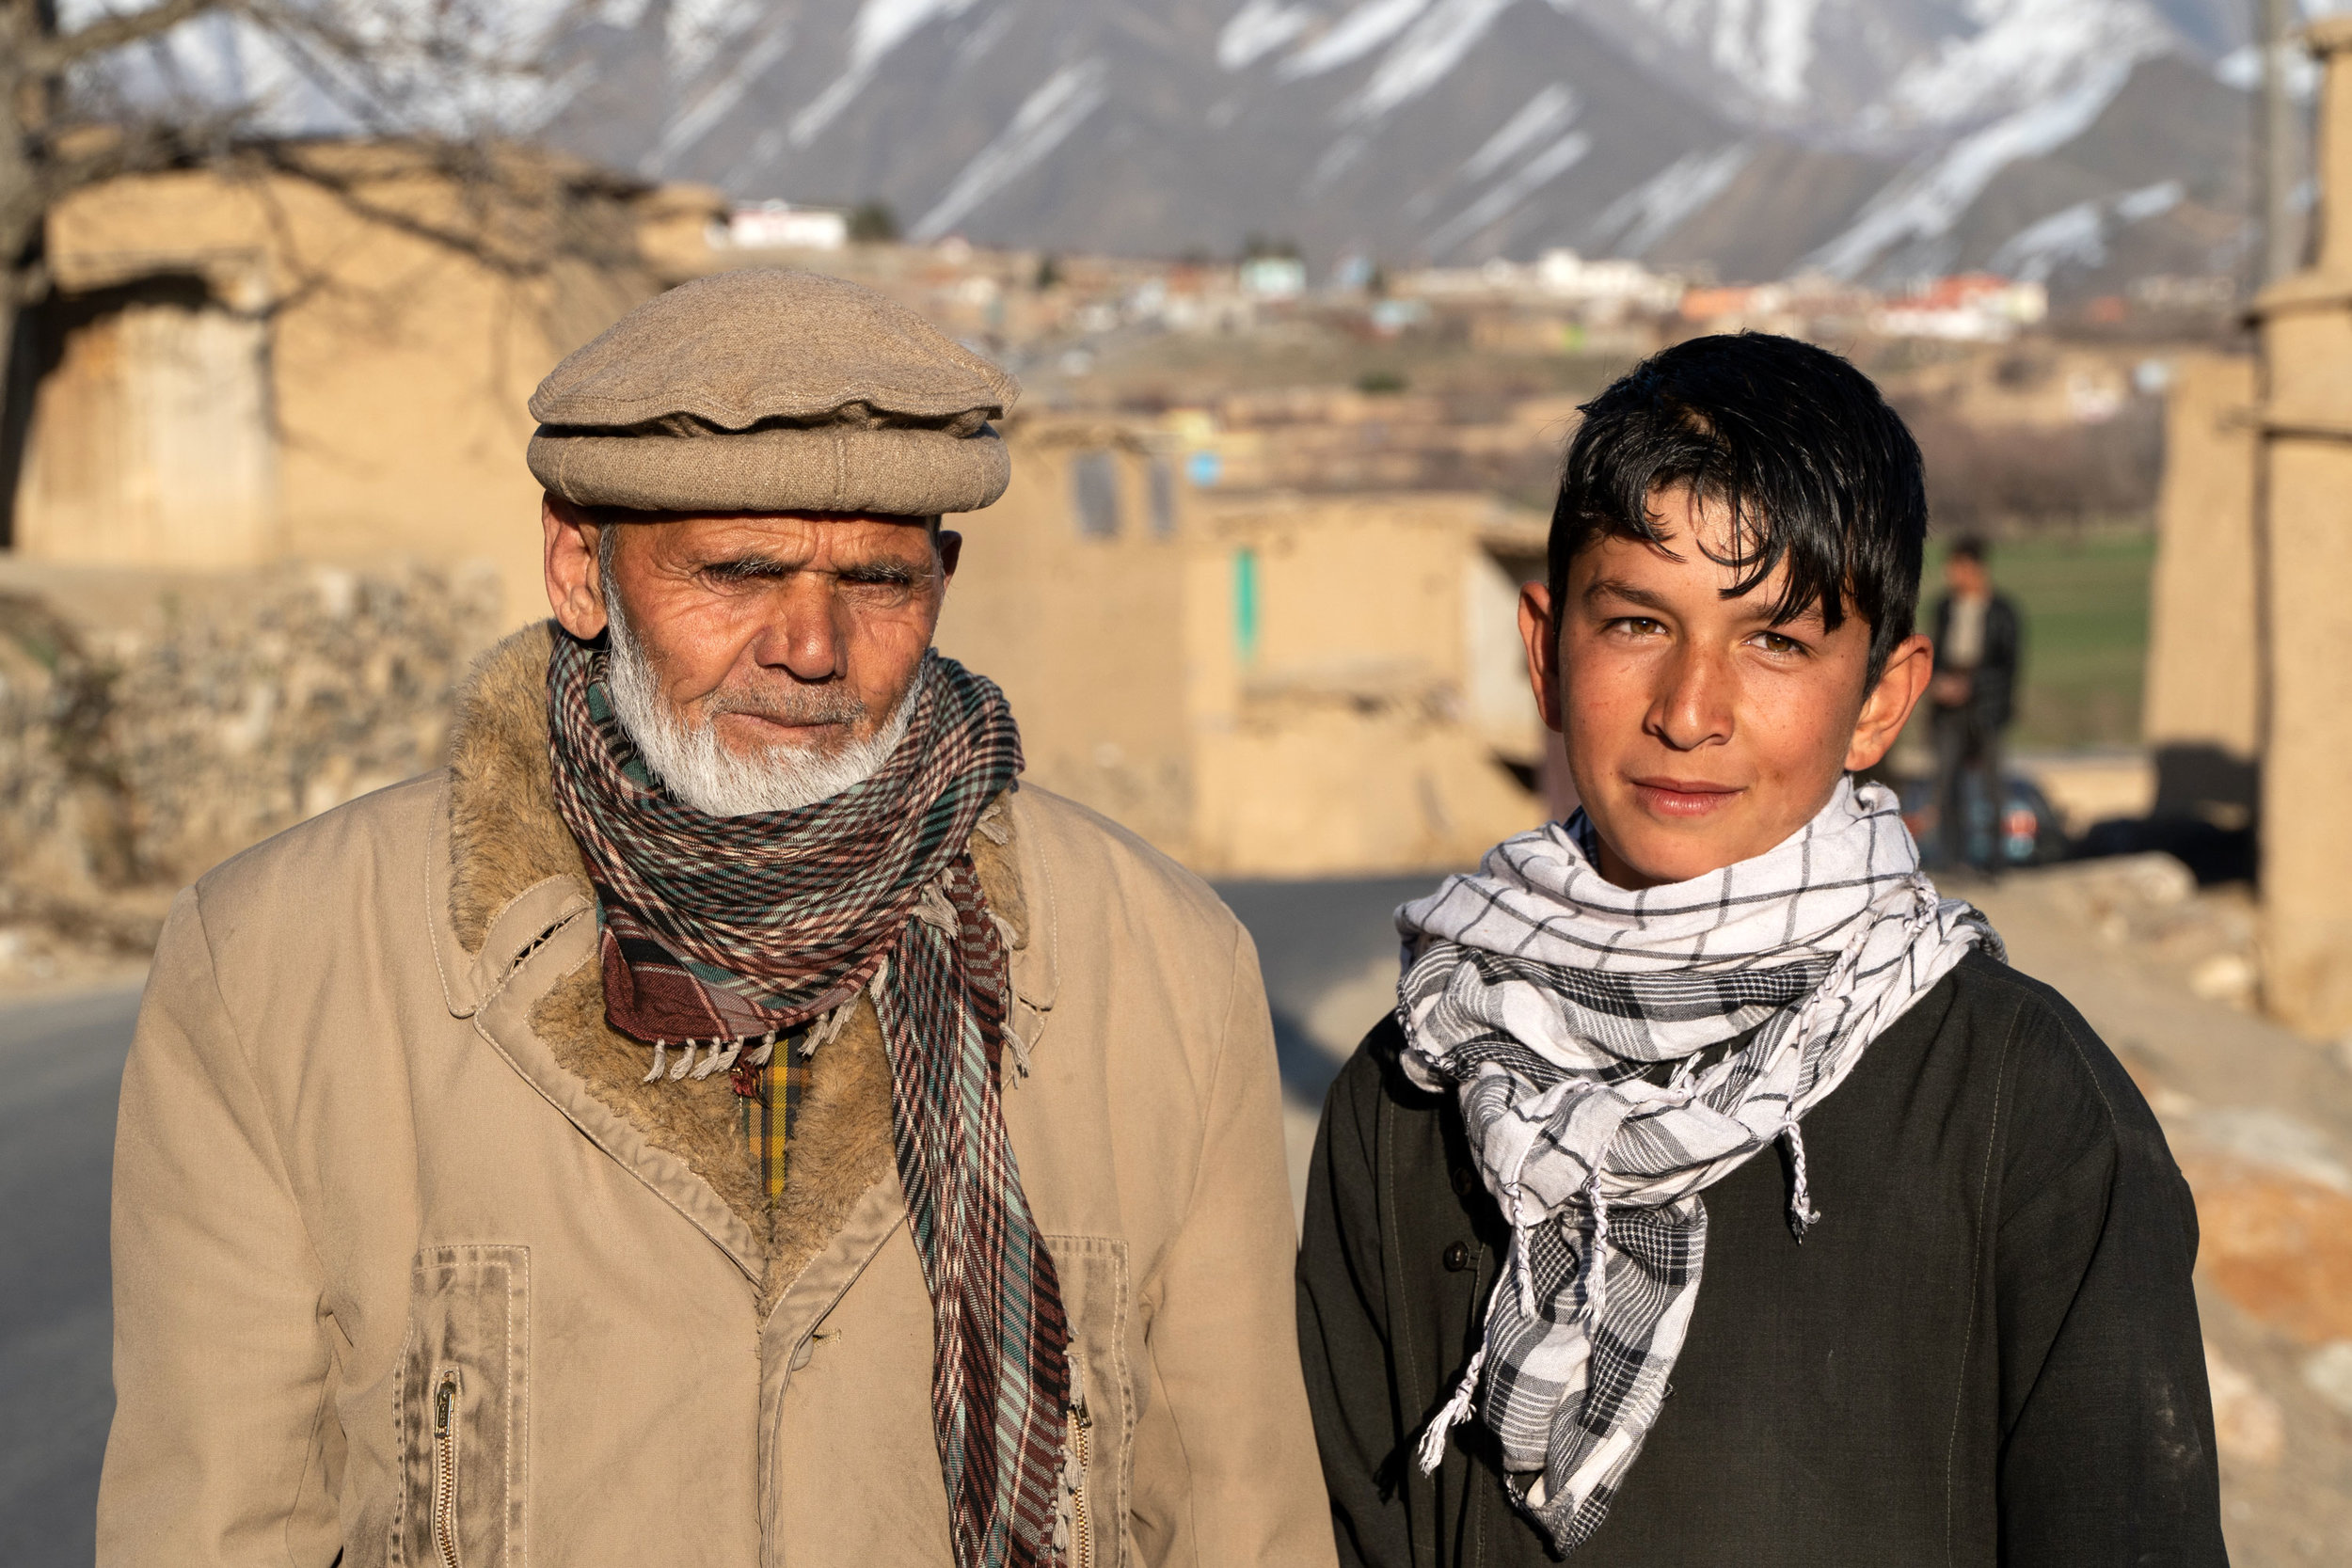 An ethnic Tajik grandfather and grandson pose for s sunset picture in Parwan Province's Panjshir Valley. The Panjshir is part of the Tajik heartland in Afghanistan and was the home of the Tajik mujahid fighter Ahmed Shah Masood, who defended the valley and Afghanistan's northeast from the Taliban. He was later killed in a terrorist attack in 2001, and his mausoleum is here in the Panjshir.